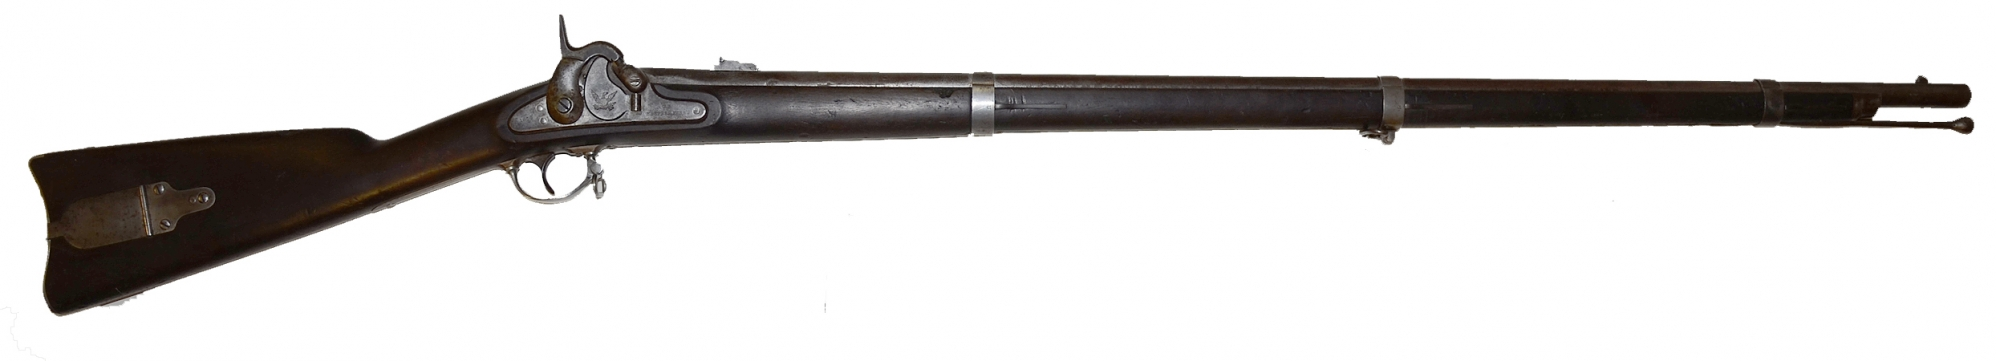 HARPERS FERRY M1855 PERCUSSION RIFLE-MUSKET, DATED 1859/60